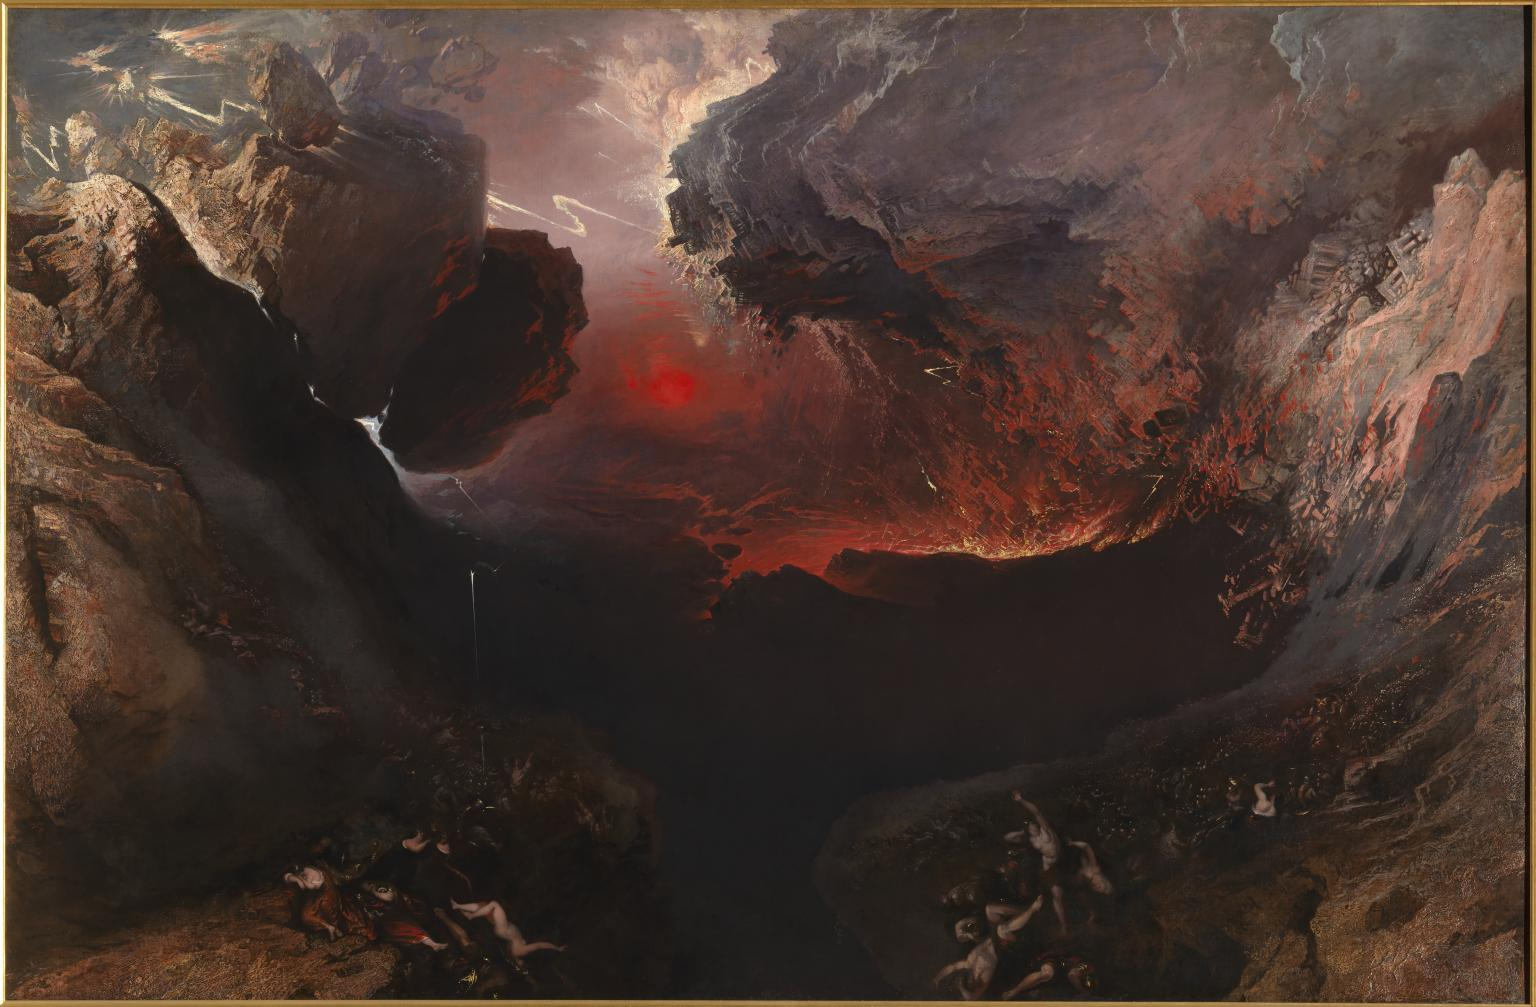 The Great Day Of His Wrath (1851-3), oil paint on canvas by John Martin (1789–1854). Image released by tate.org.uk under Creative Commons CC-BY-NC-ND (3.0 Unported).